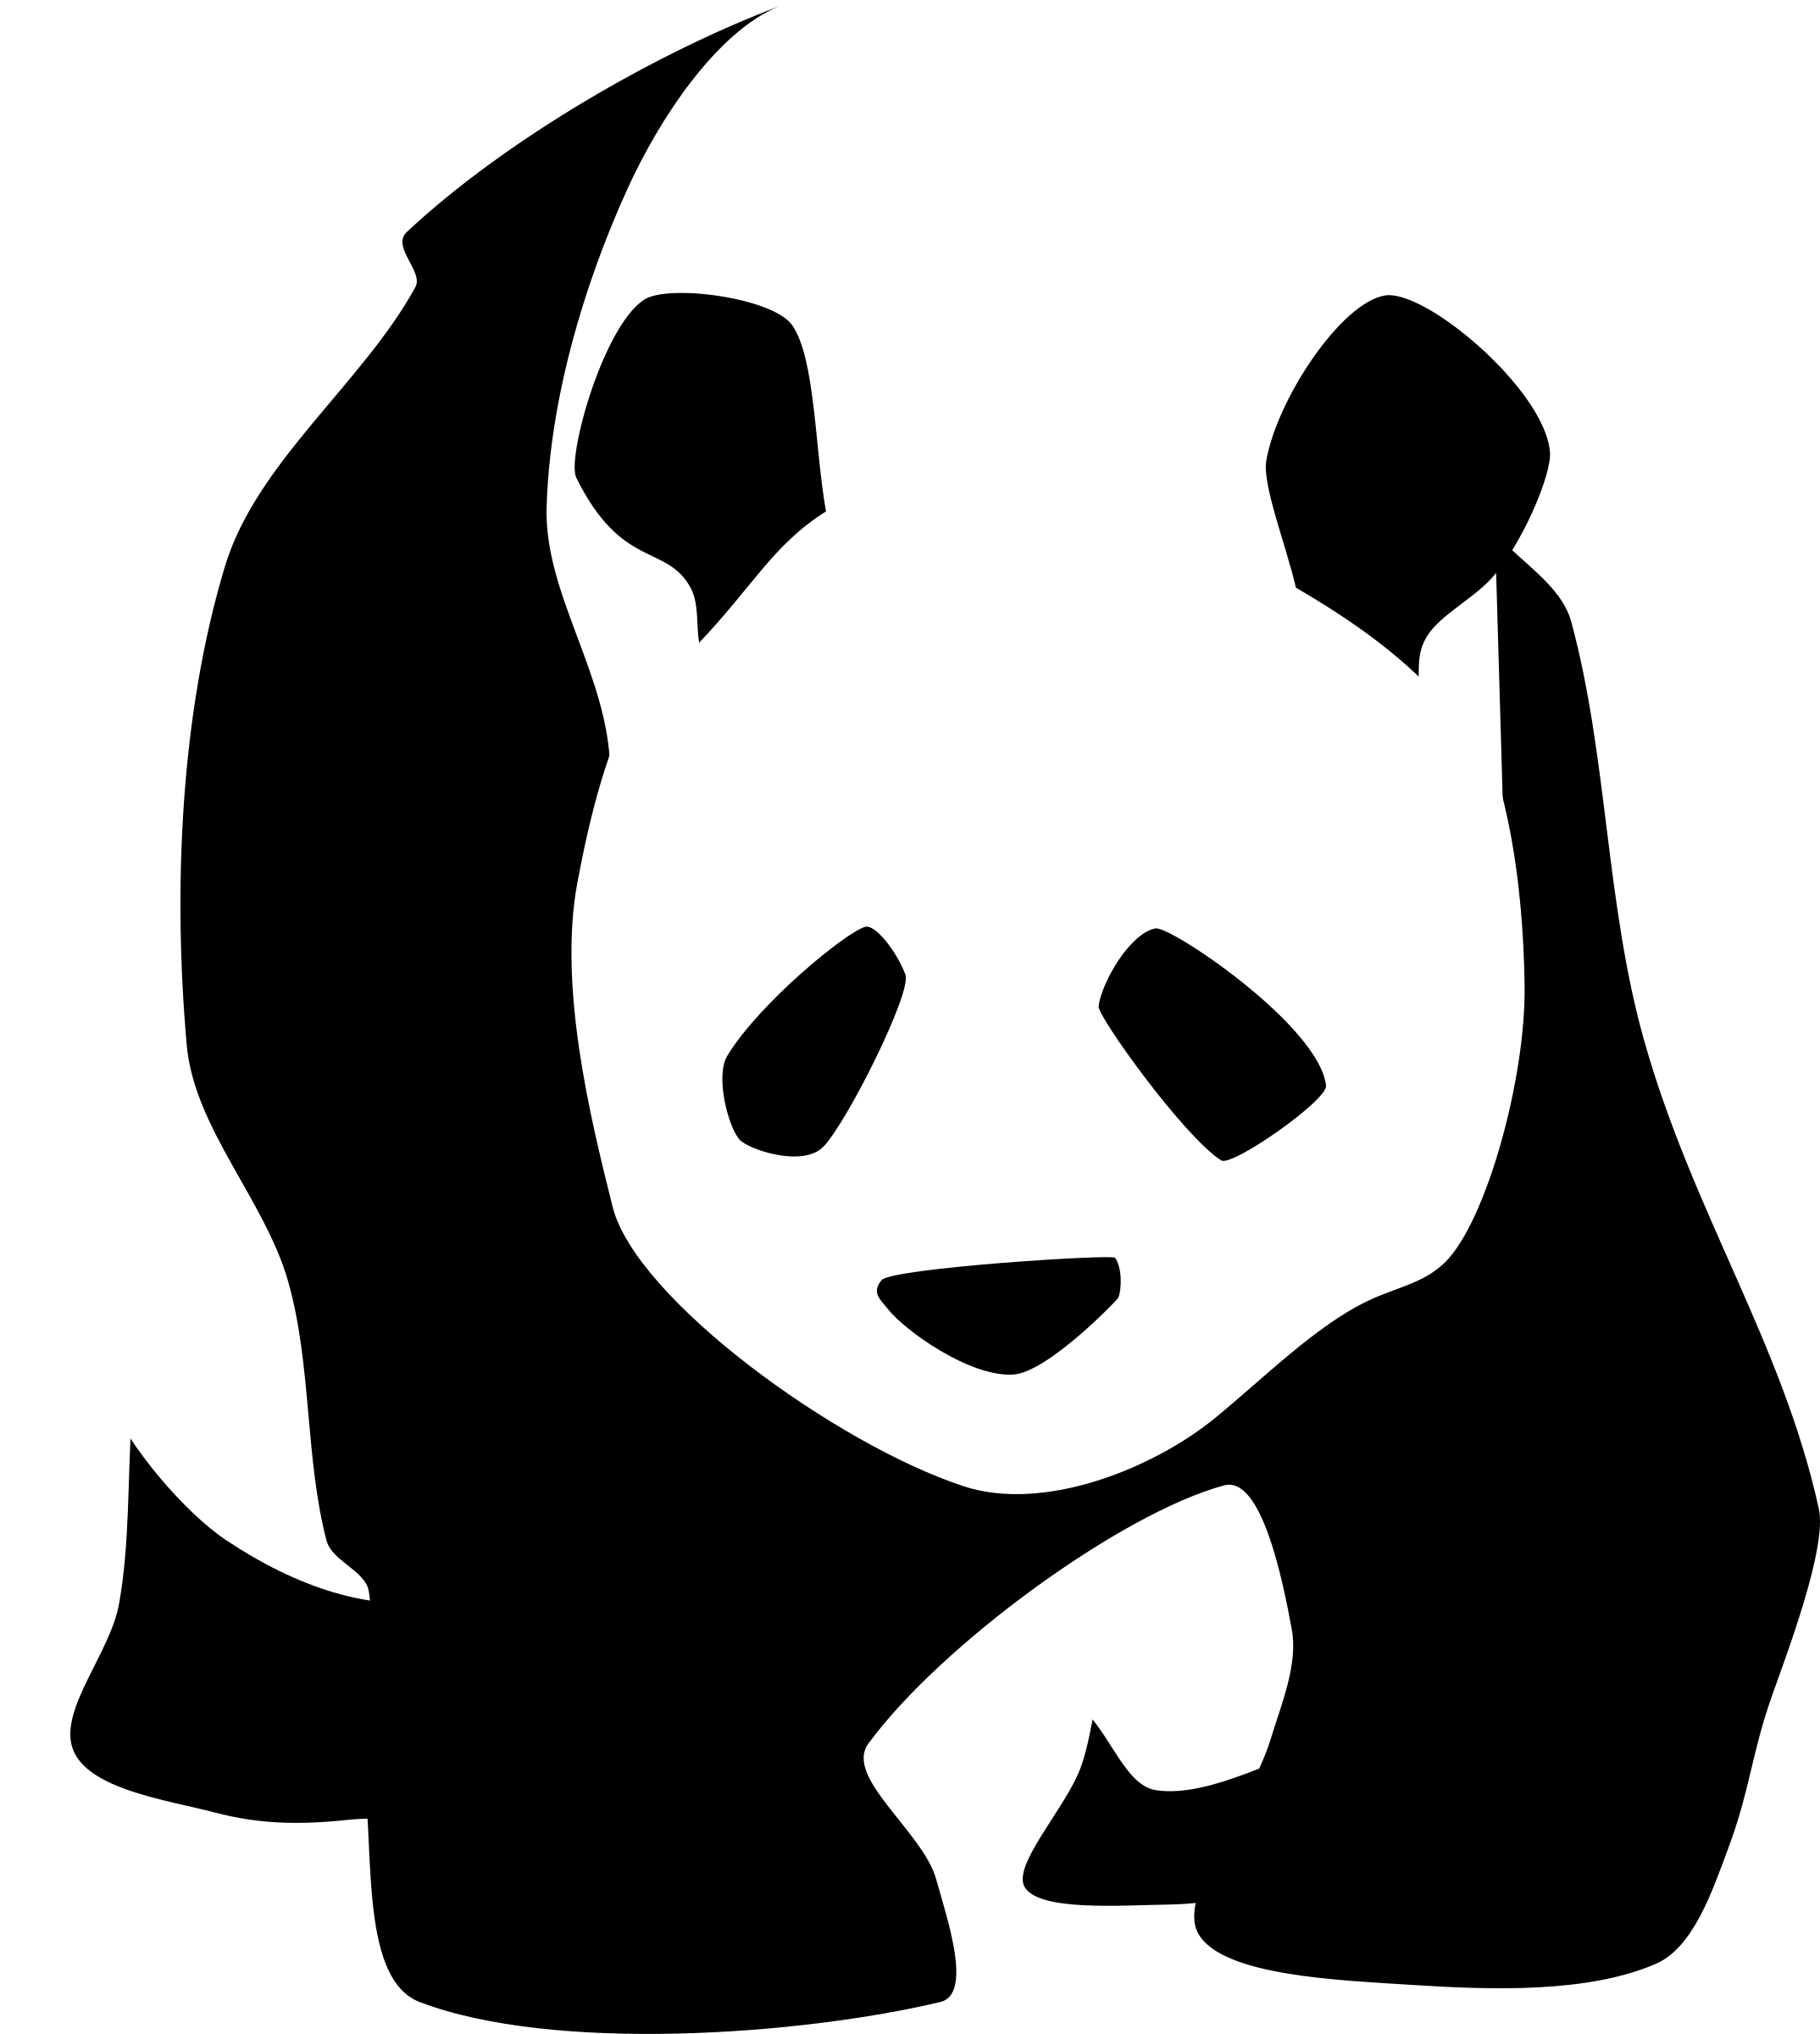 giant-panda-1 by baronchon